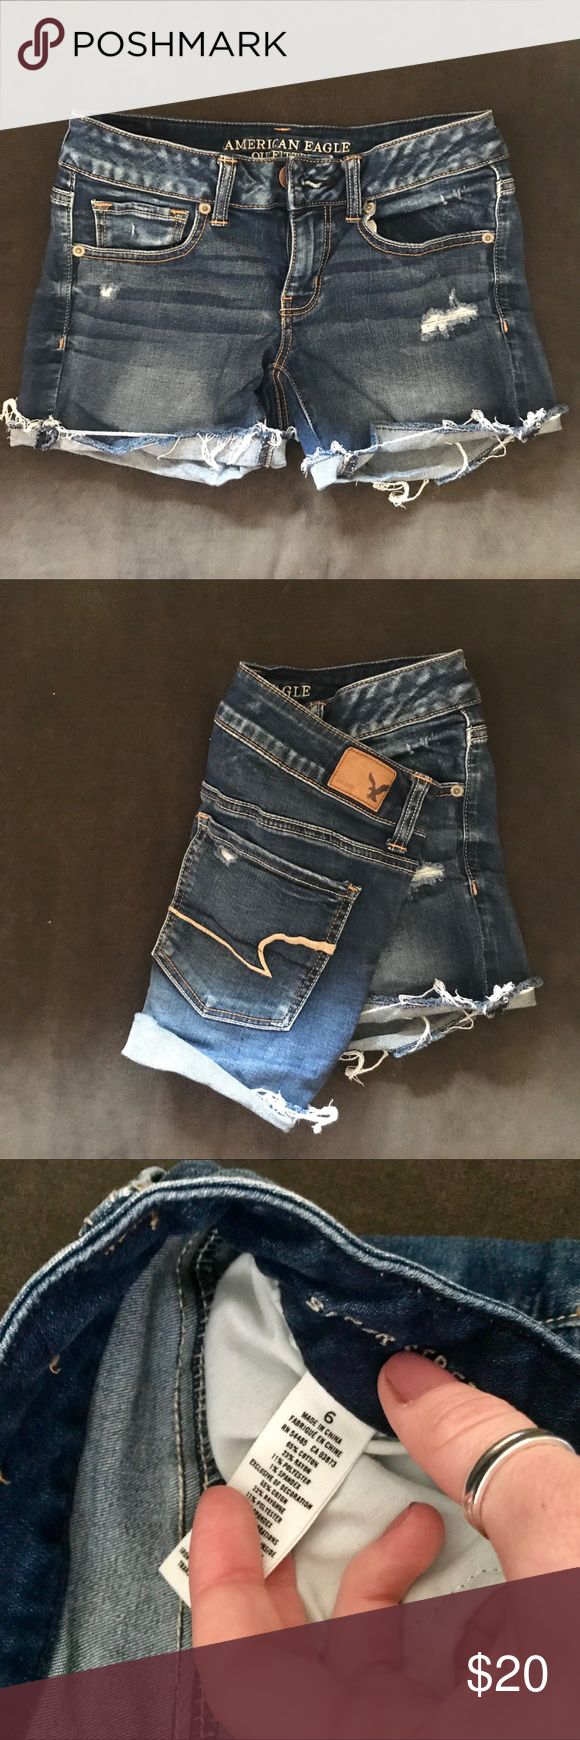 Distressed dark denim shorts AE American eagle distressed denim shorts. Such a cute fit and style. Can be worn with the cuff rolled or unrolled for a little more coverage. Size 6, but I'd say fits size 4-6. Very stretchy denim. American Eagle Outfitters Shorts Jean Shorts